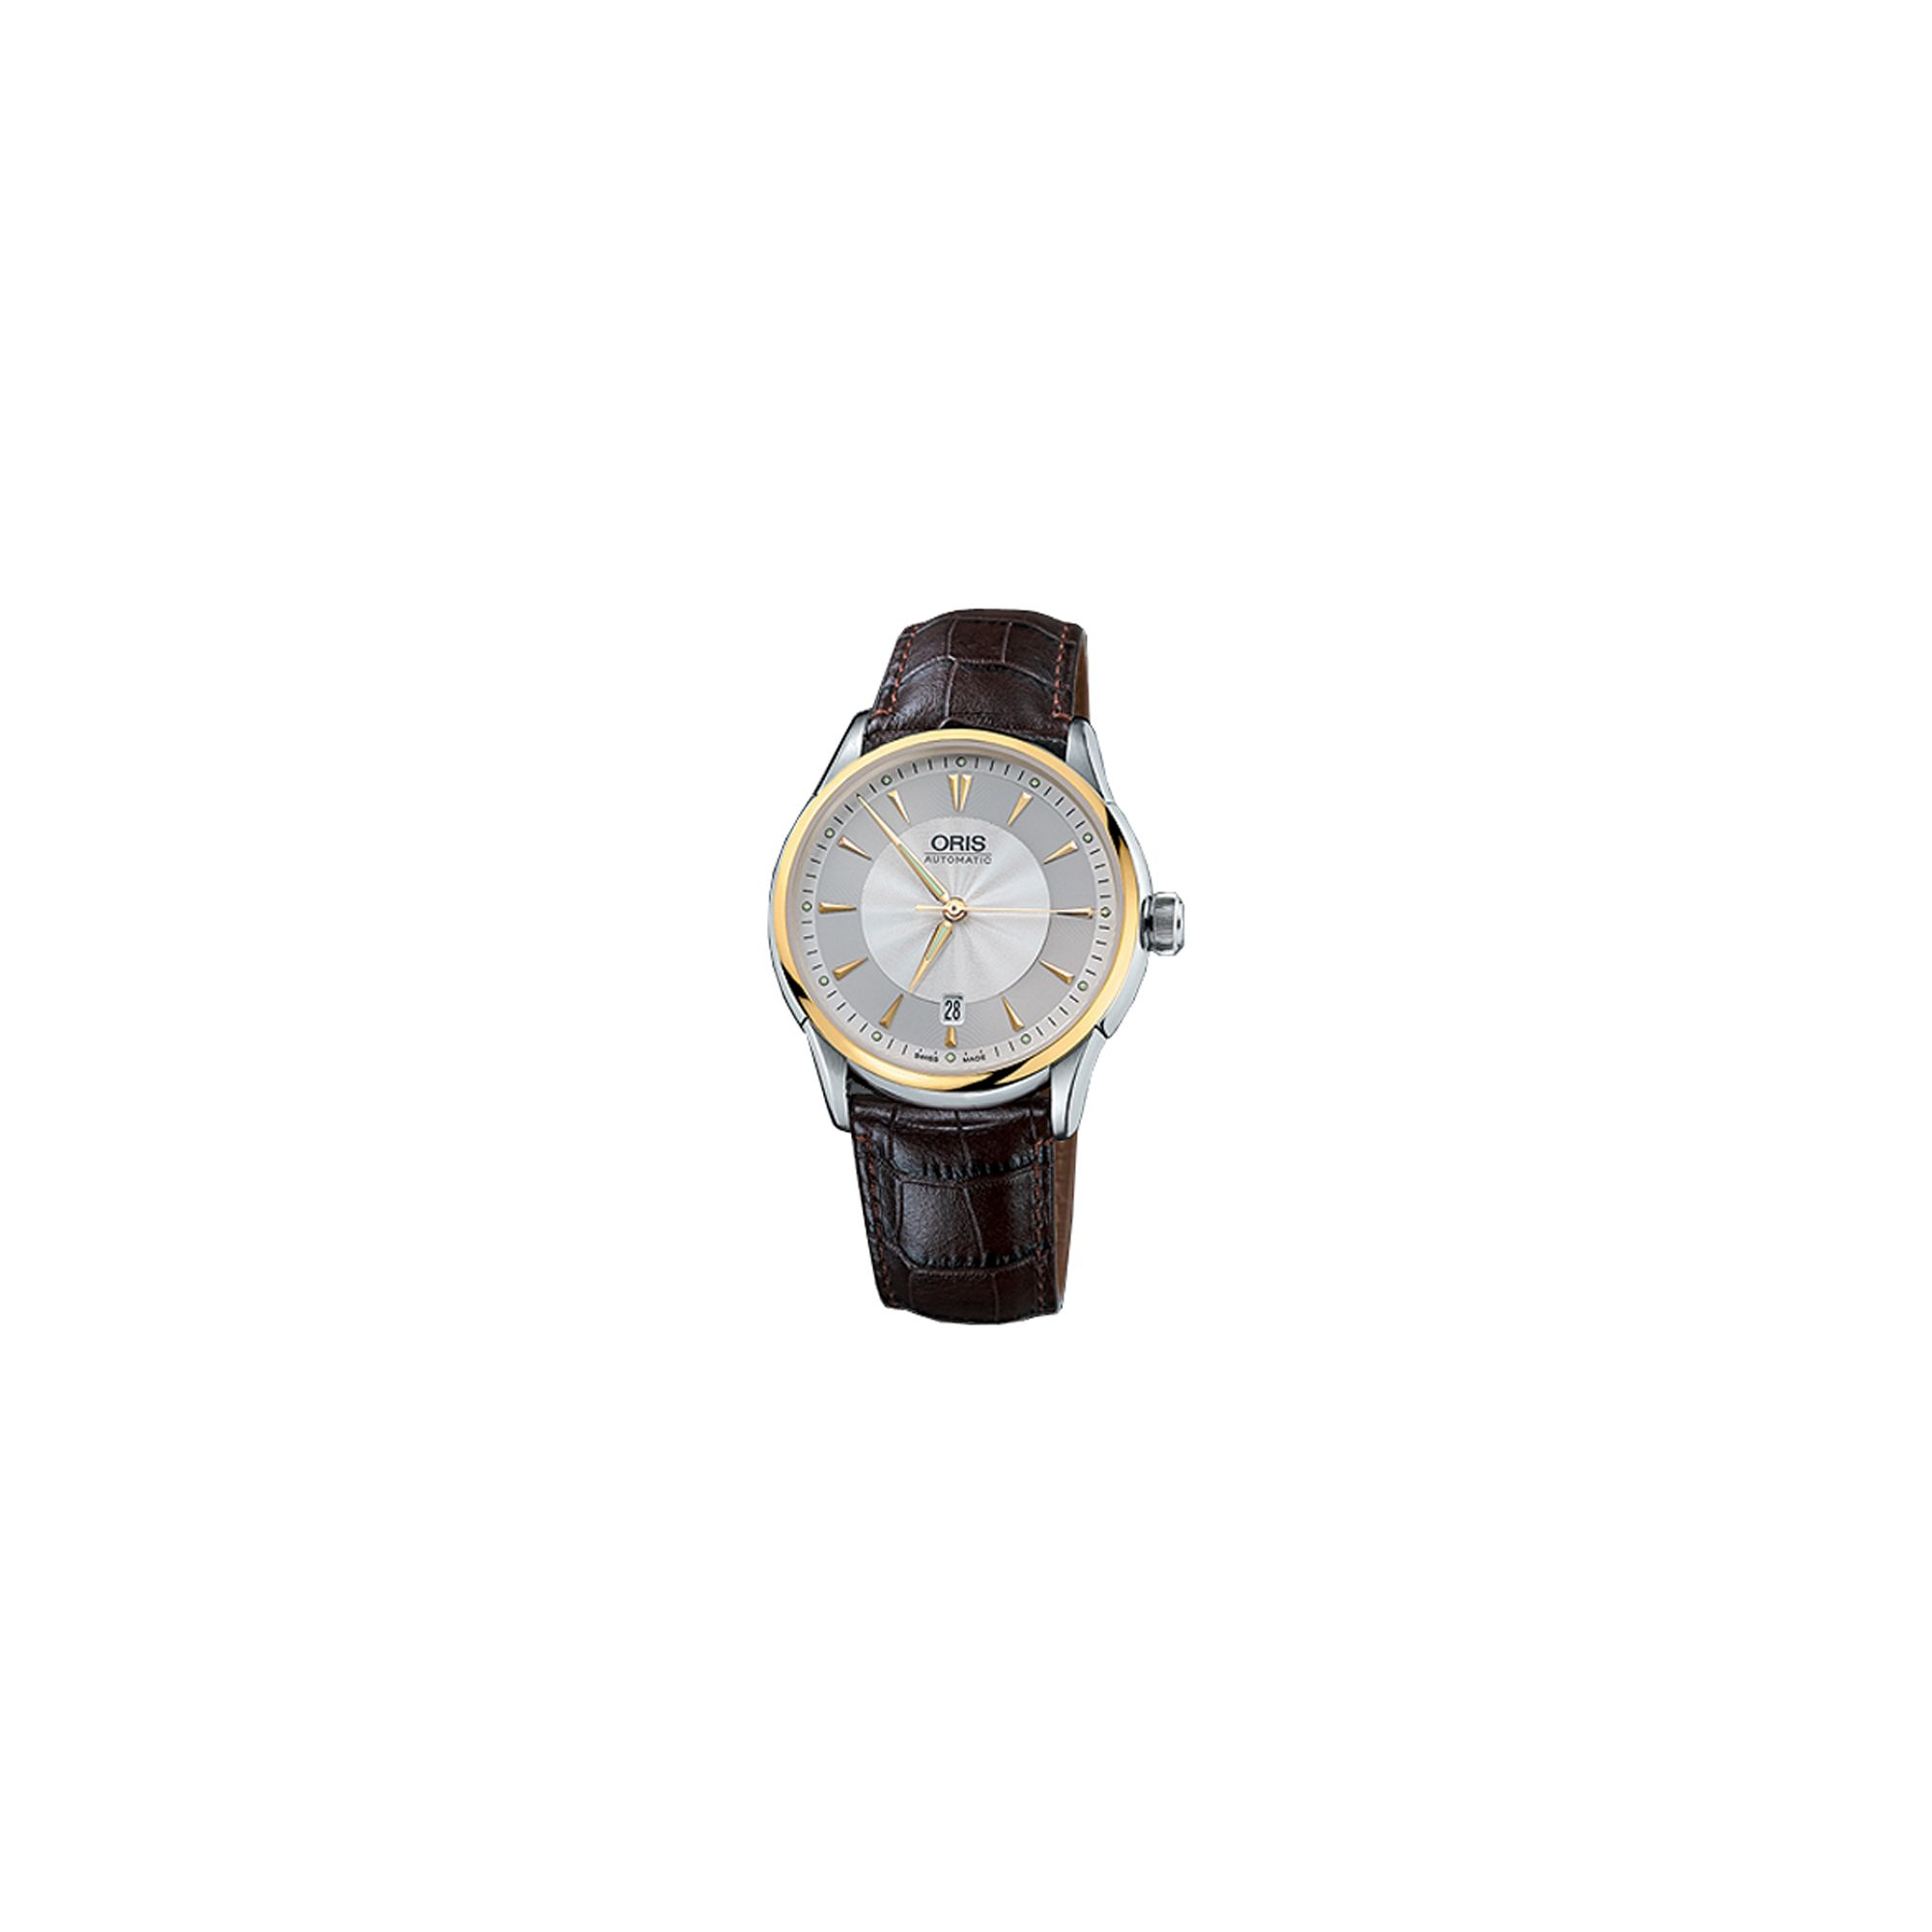 Oris Gents Artelier Brown Leather Strap Watch 73376294063LS at Tescos Direct